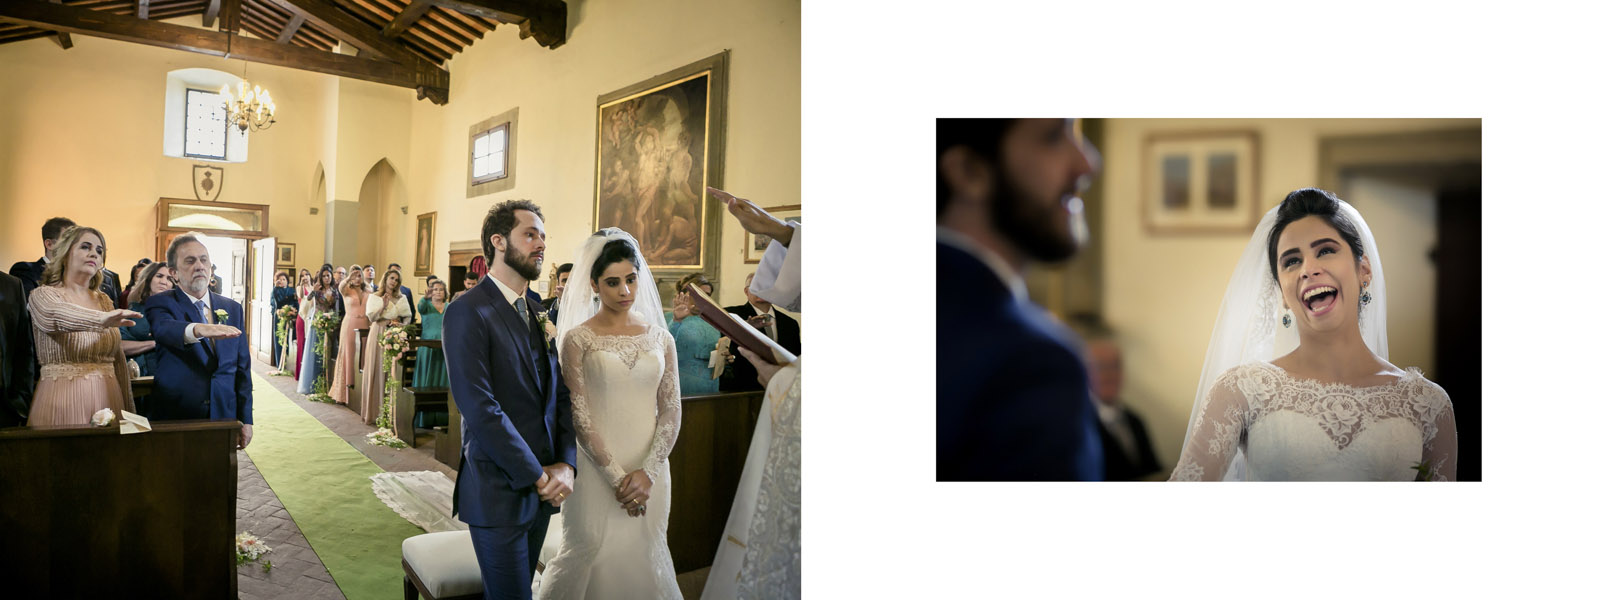 Camilla & José :: David Bastianoni wedding photographer